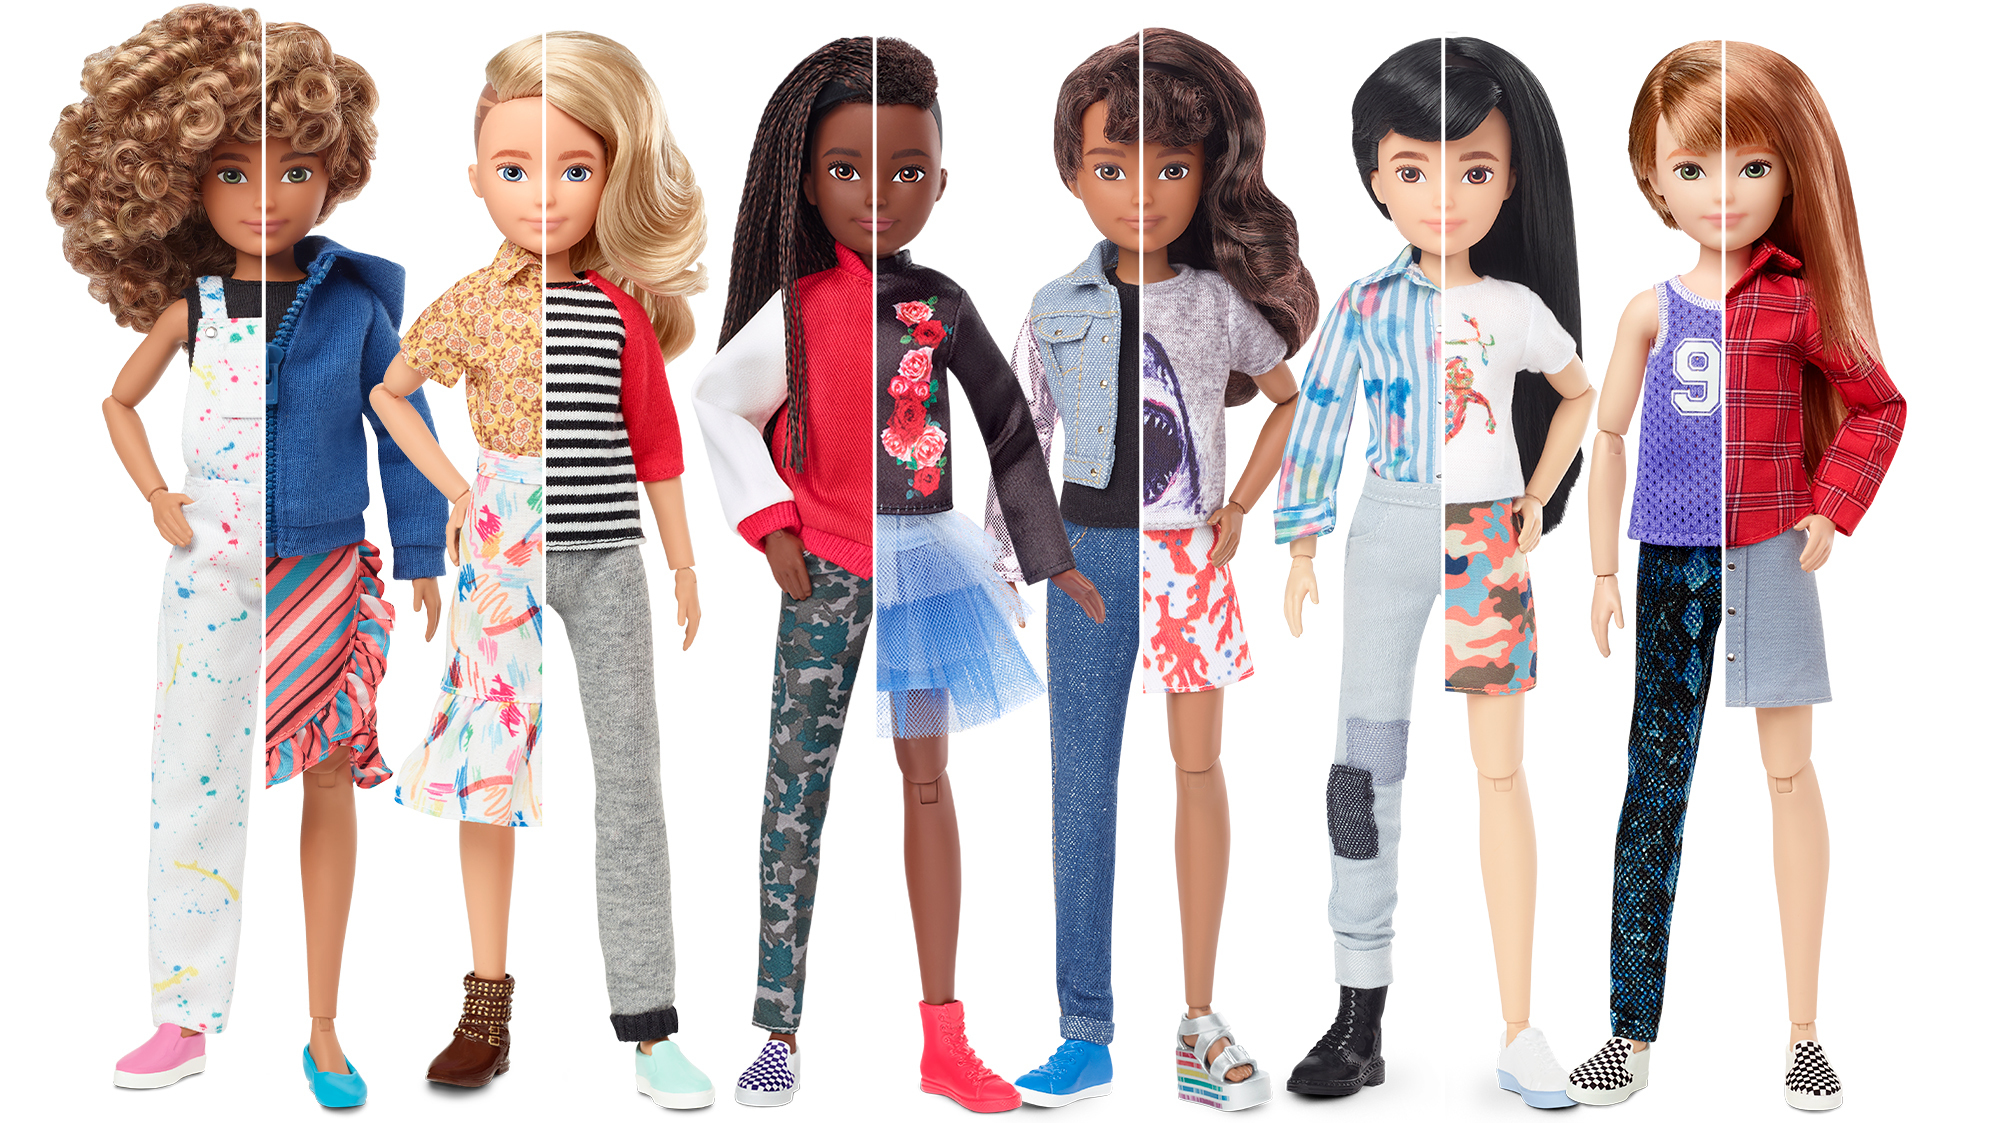 Mattel Launches New Gender-Neutral Dolls